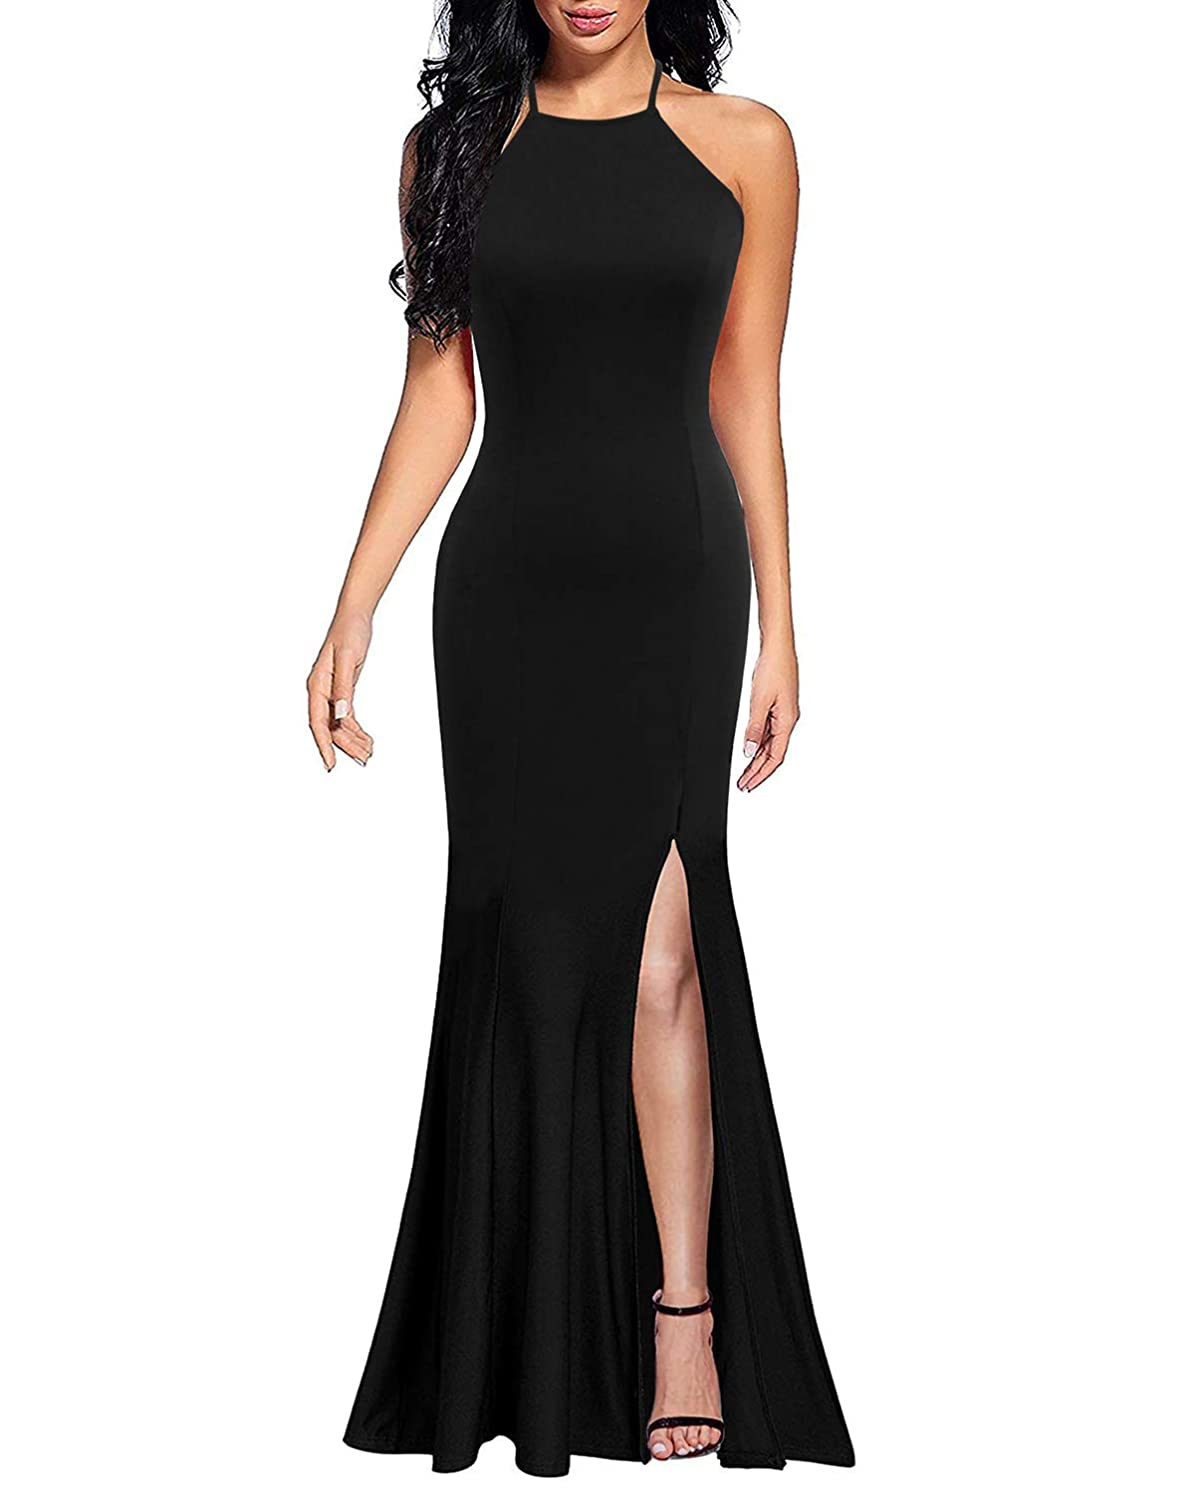 19a8dbacfb47 Lyrur Women s Sexy Spaghetti Straps Slit Formal Long Bridesmaid Maxi Party  Evening Dress Mermaid Prom Gown at Amazon Women s Clothing store